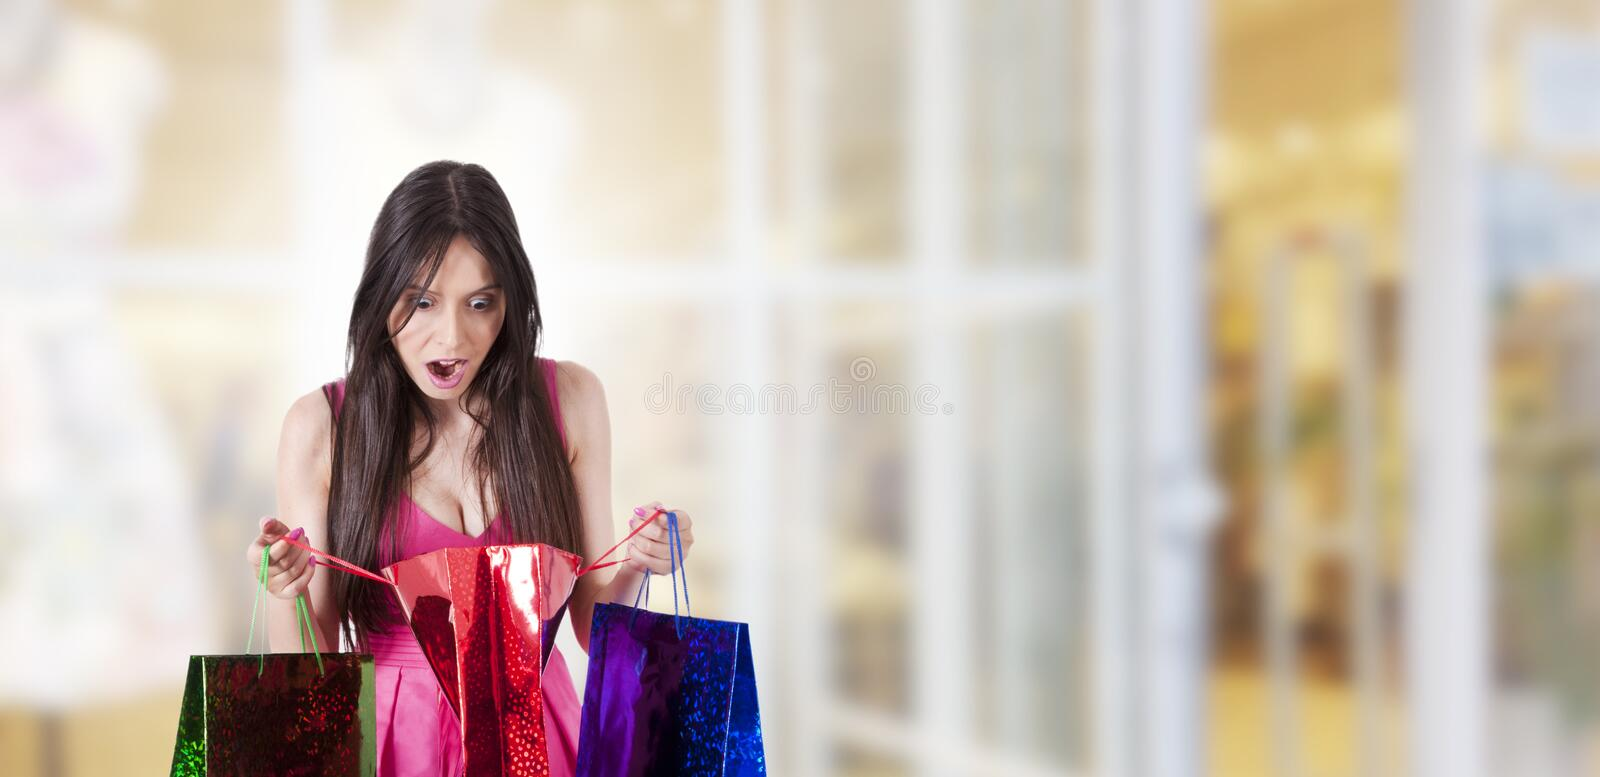 Surprised woman shopping stock image